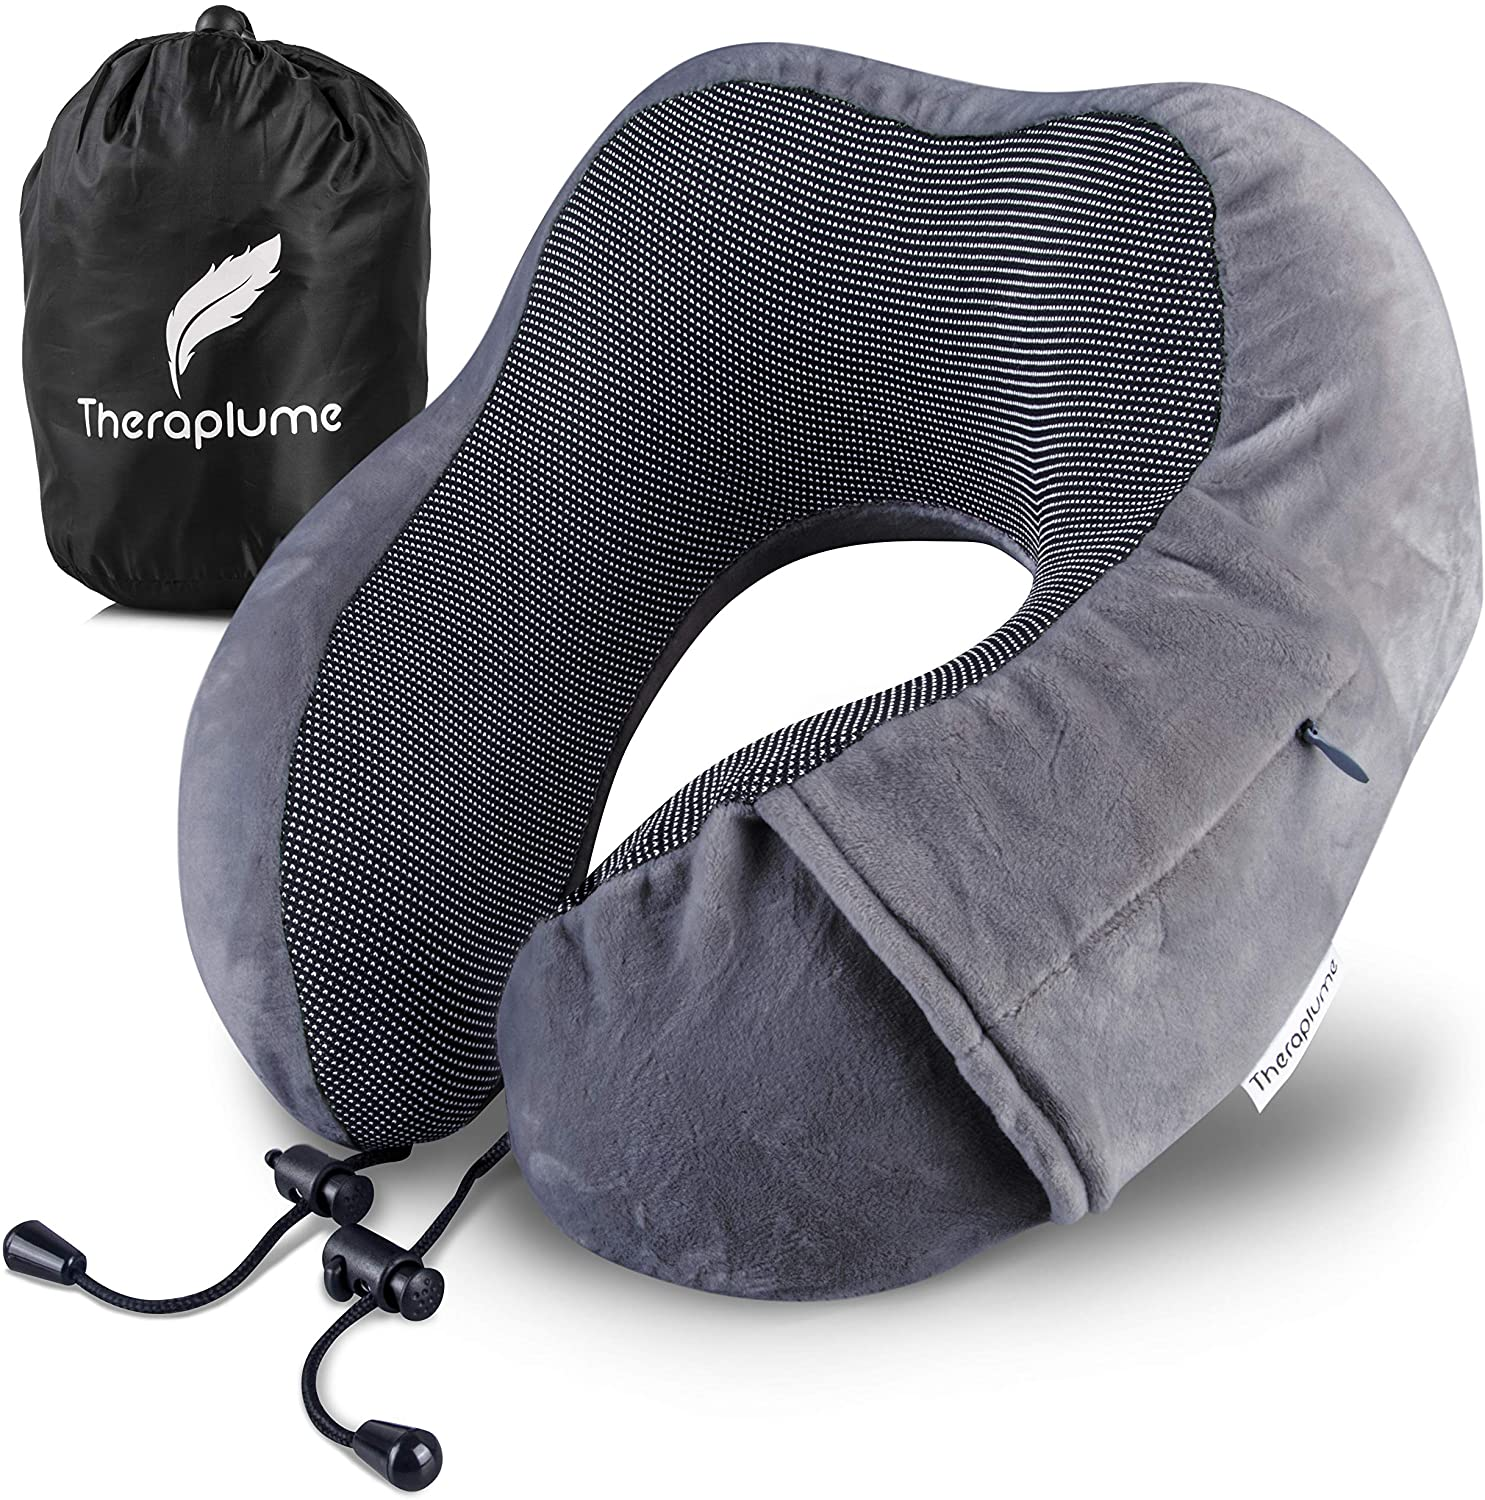 Theraplume Travel Pillow: Premium Memory Foam Airplane Pillow with Ultra Plush Cover - Comfortable Breathable Machine Washable Adjustable Neck, Head and Chin Support with Bag (Charcoal Grey)